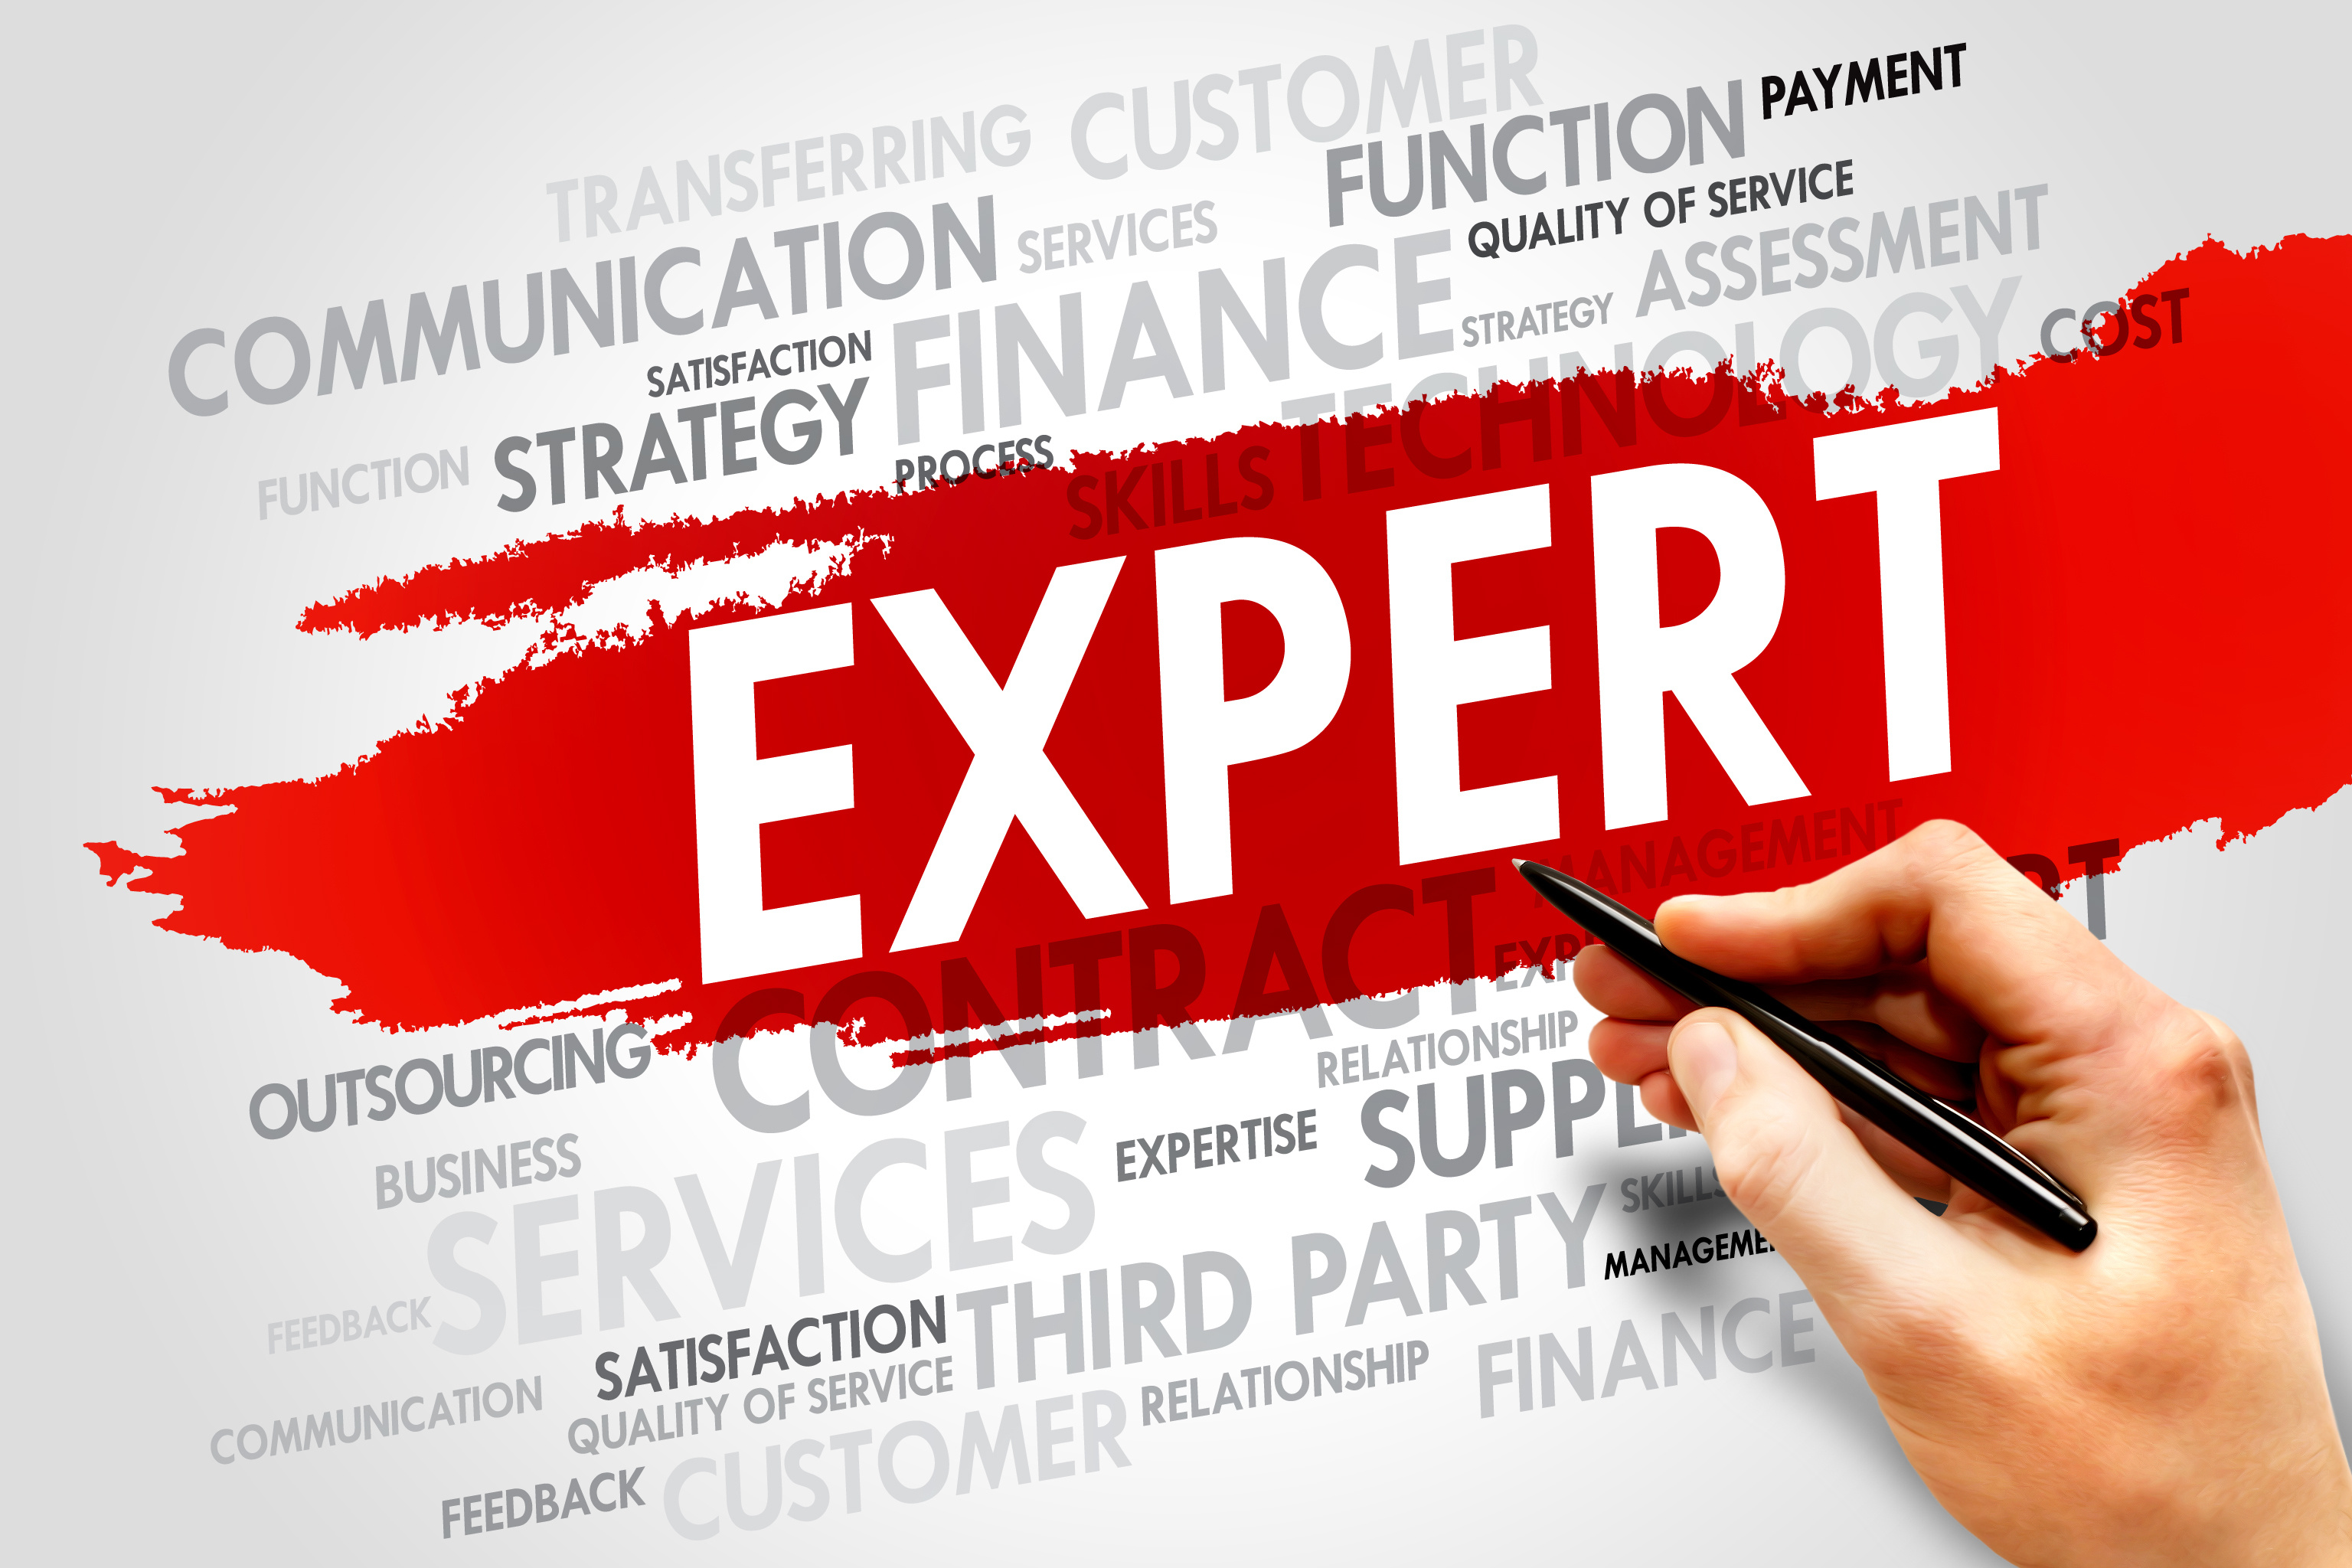 Make Yourself the Expert